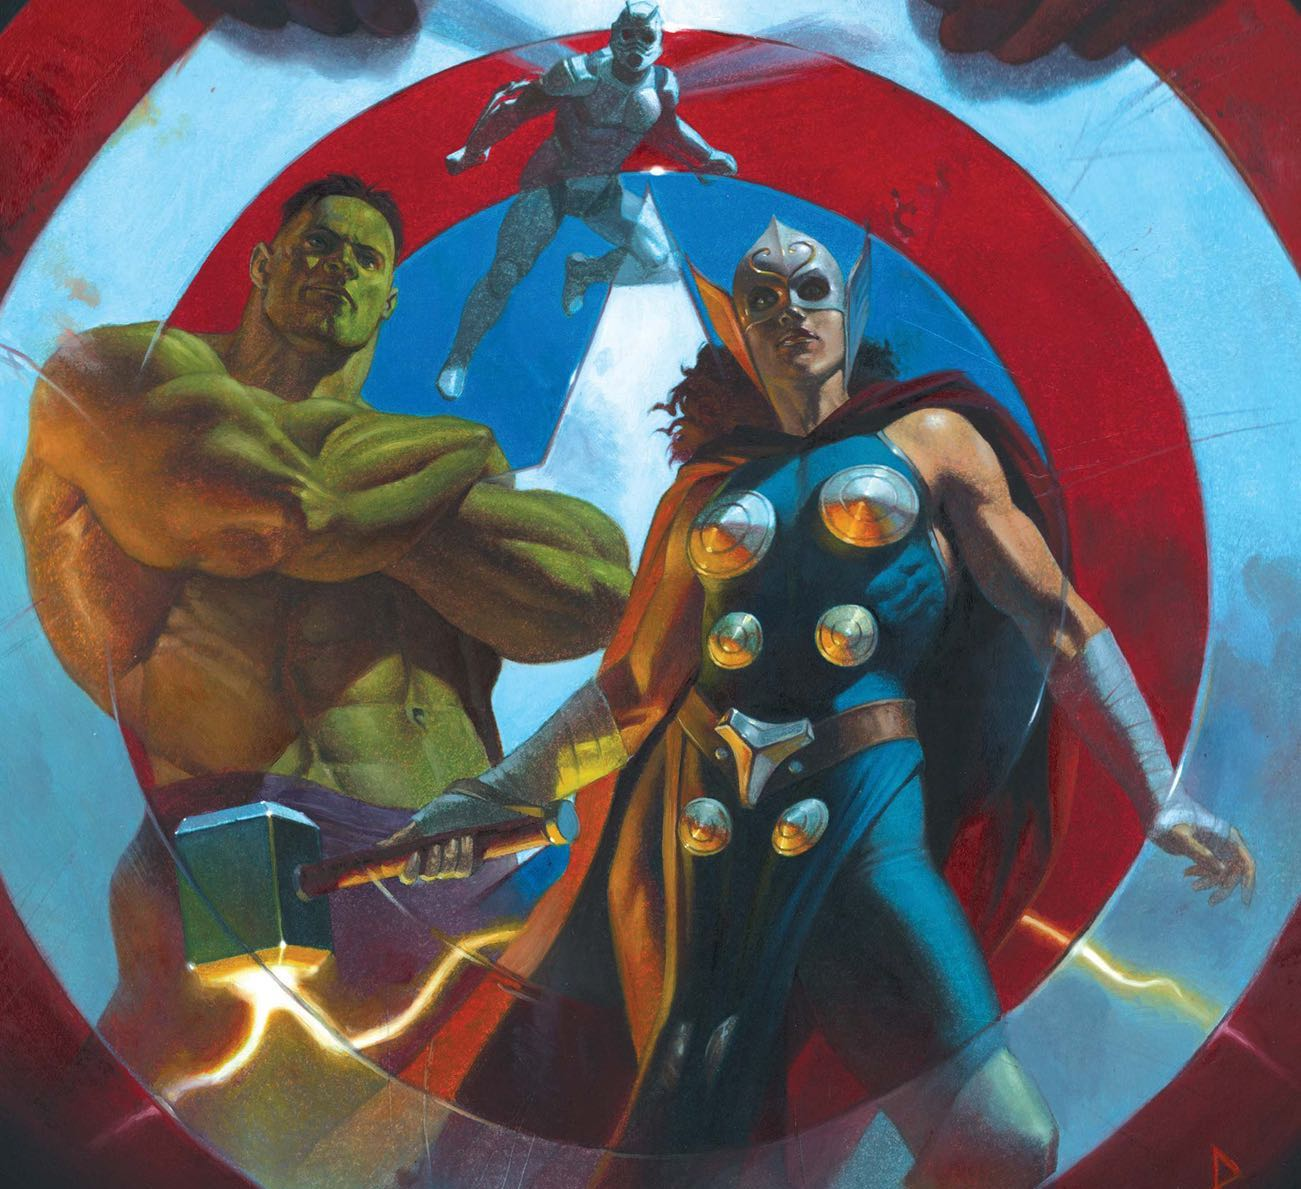 Avengers of the Wastelands #2 Review